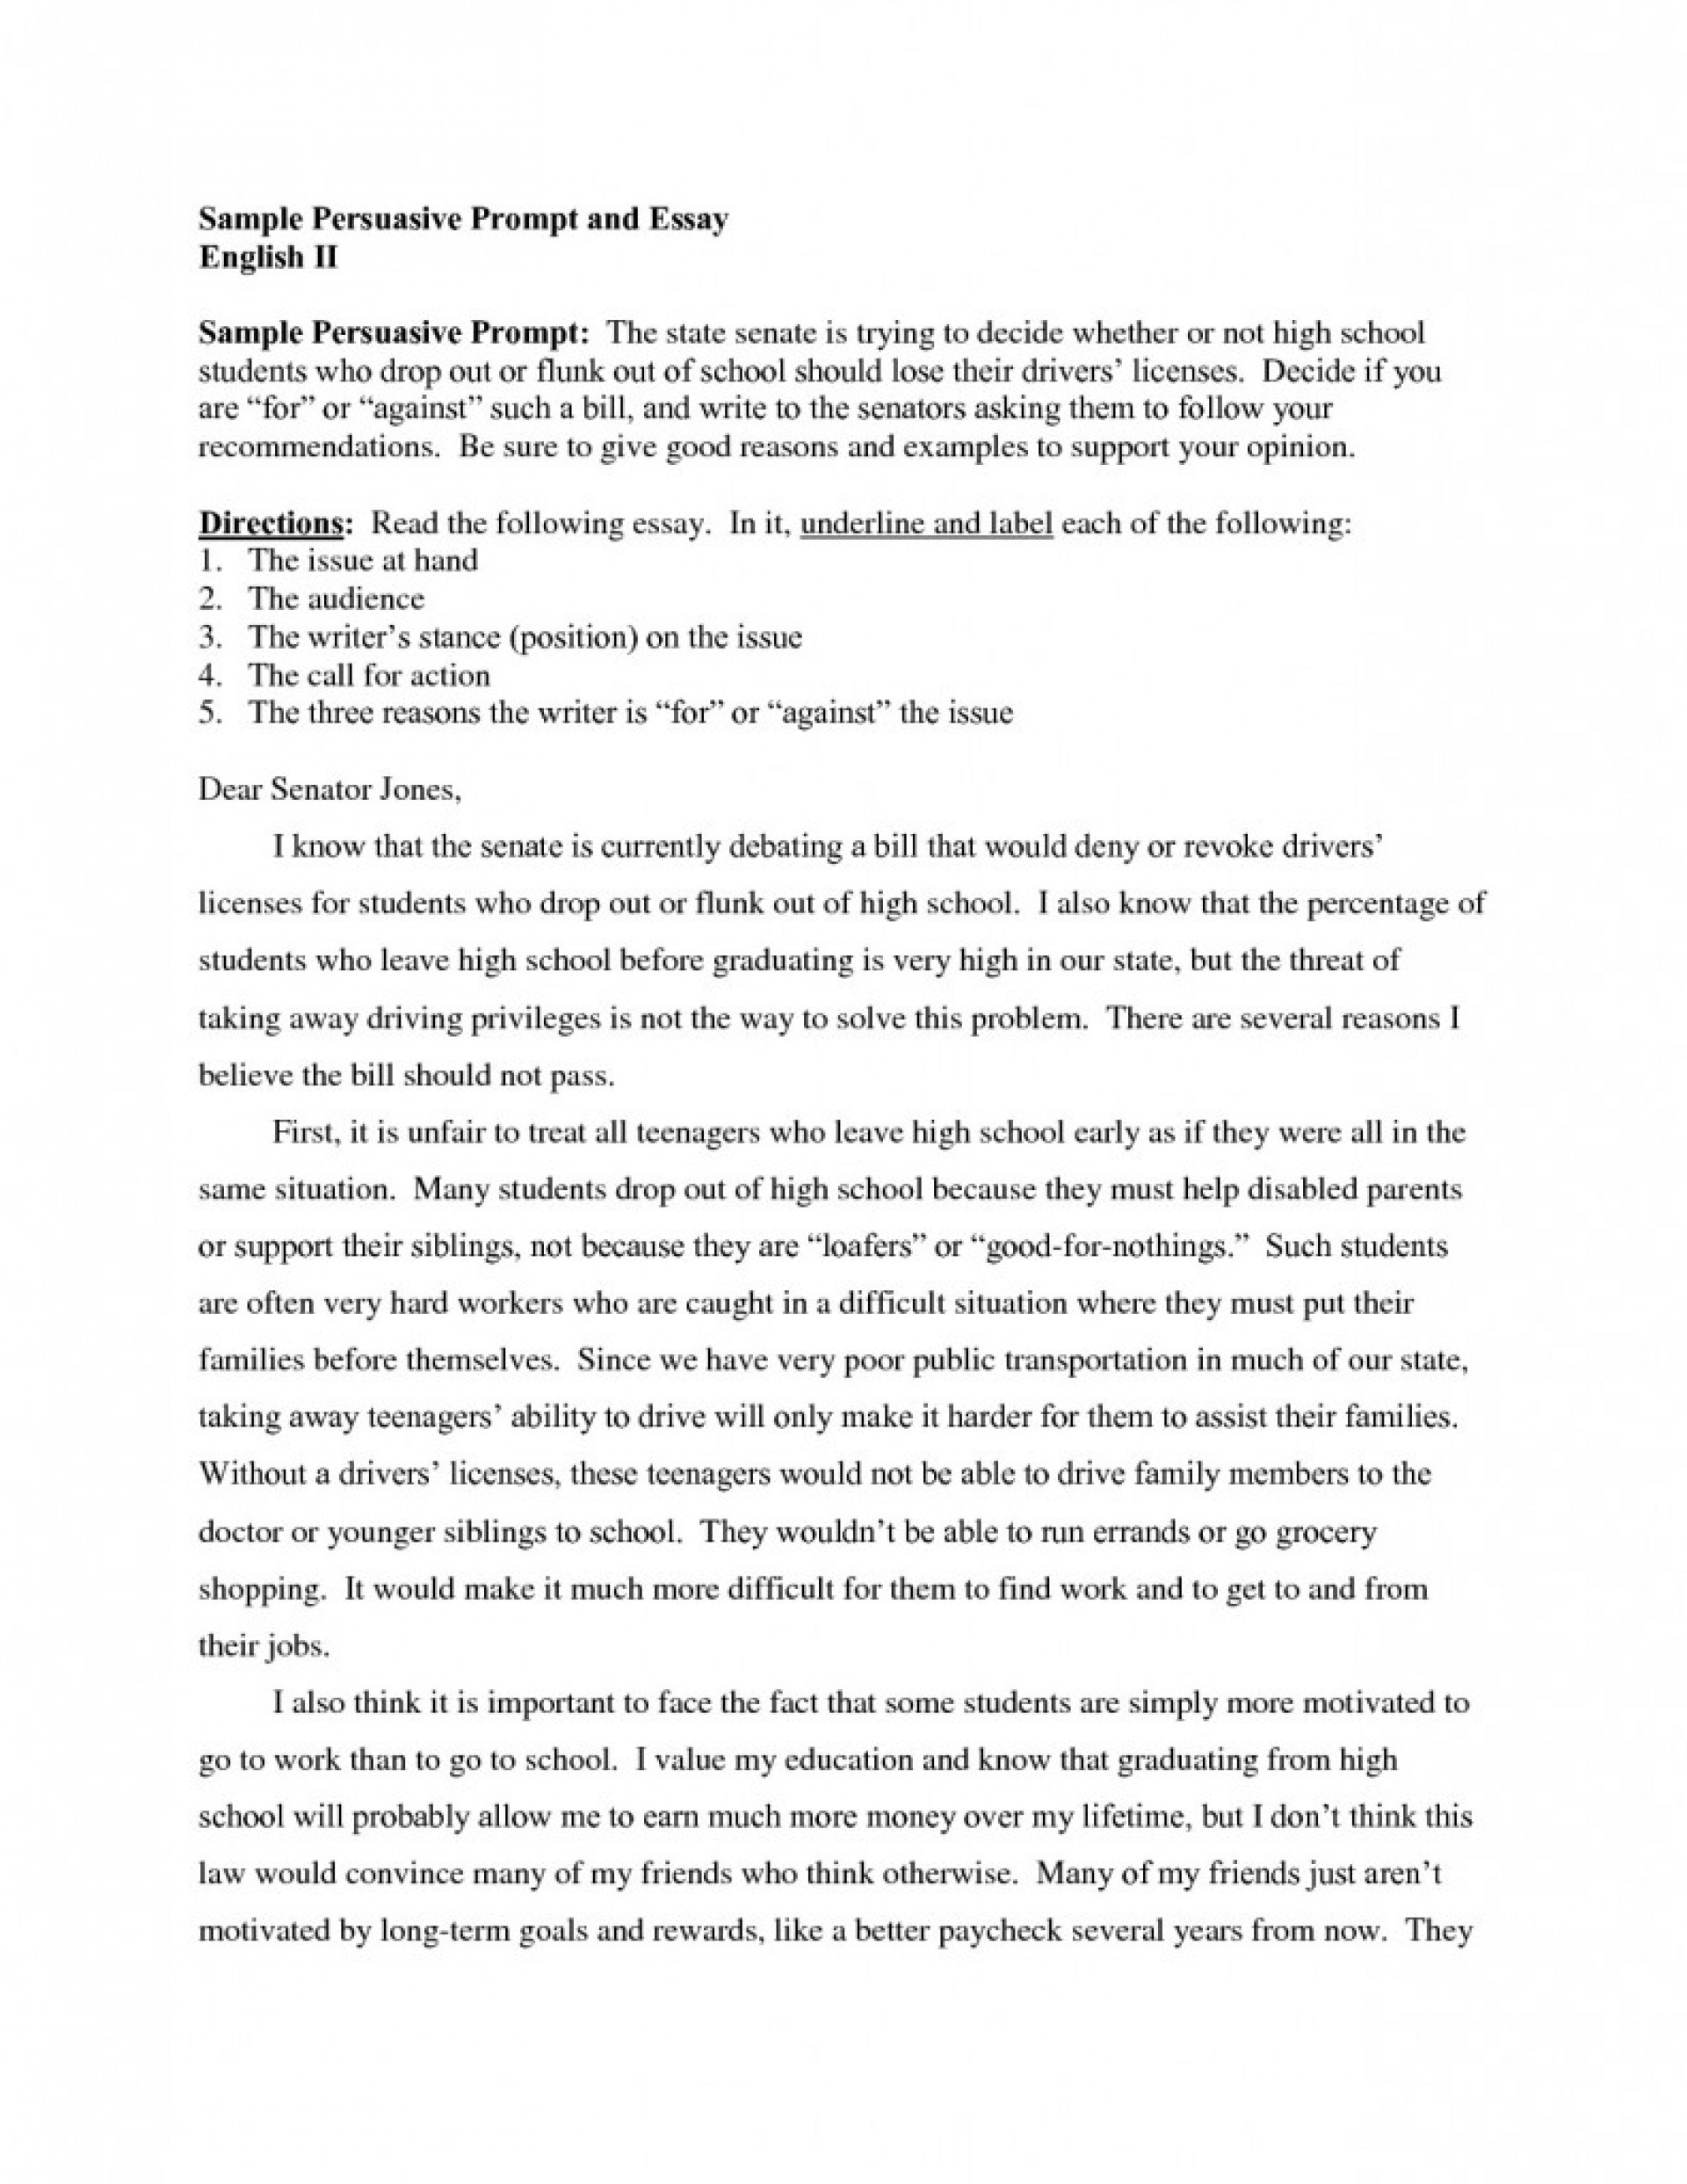 014 Essay Example Should College Free Persuasive Examples High School Writings And Essays Not Persusive Pertaini Argumentative Education For Everyone Textbooks Impressive Be 1920